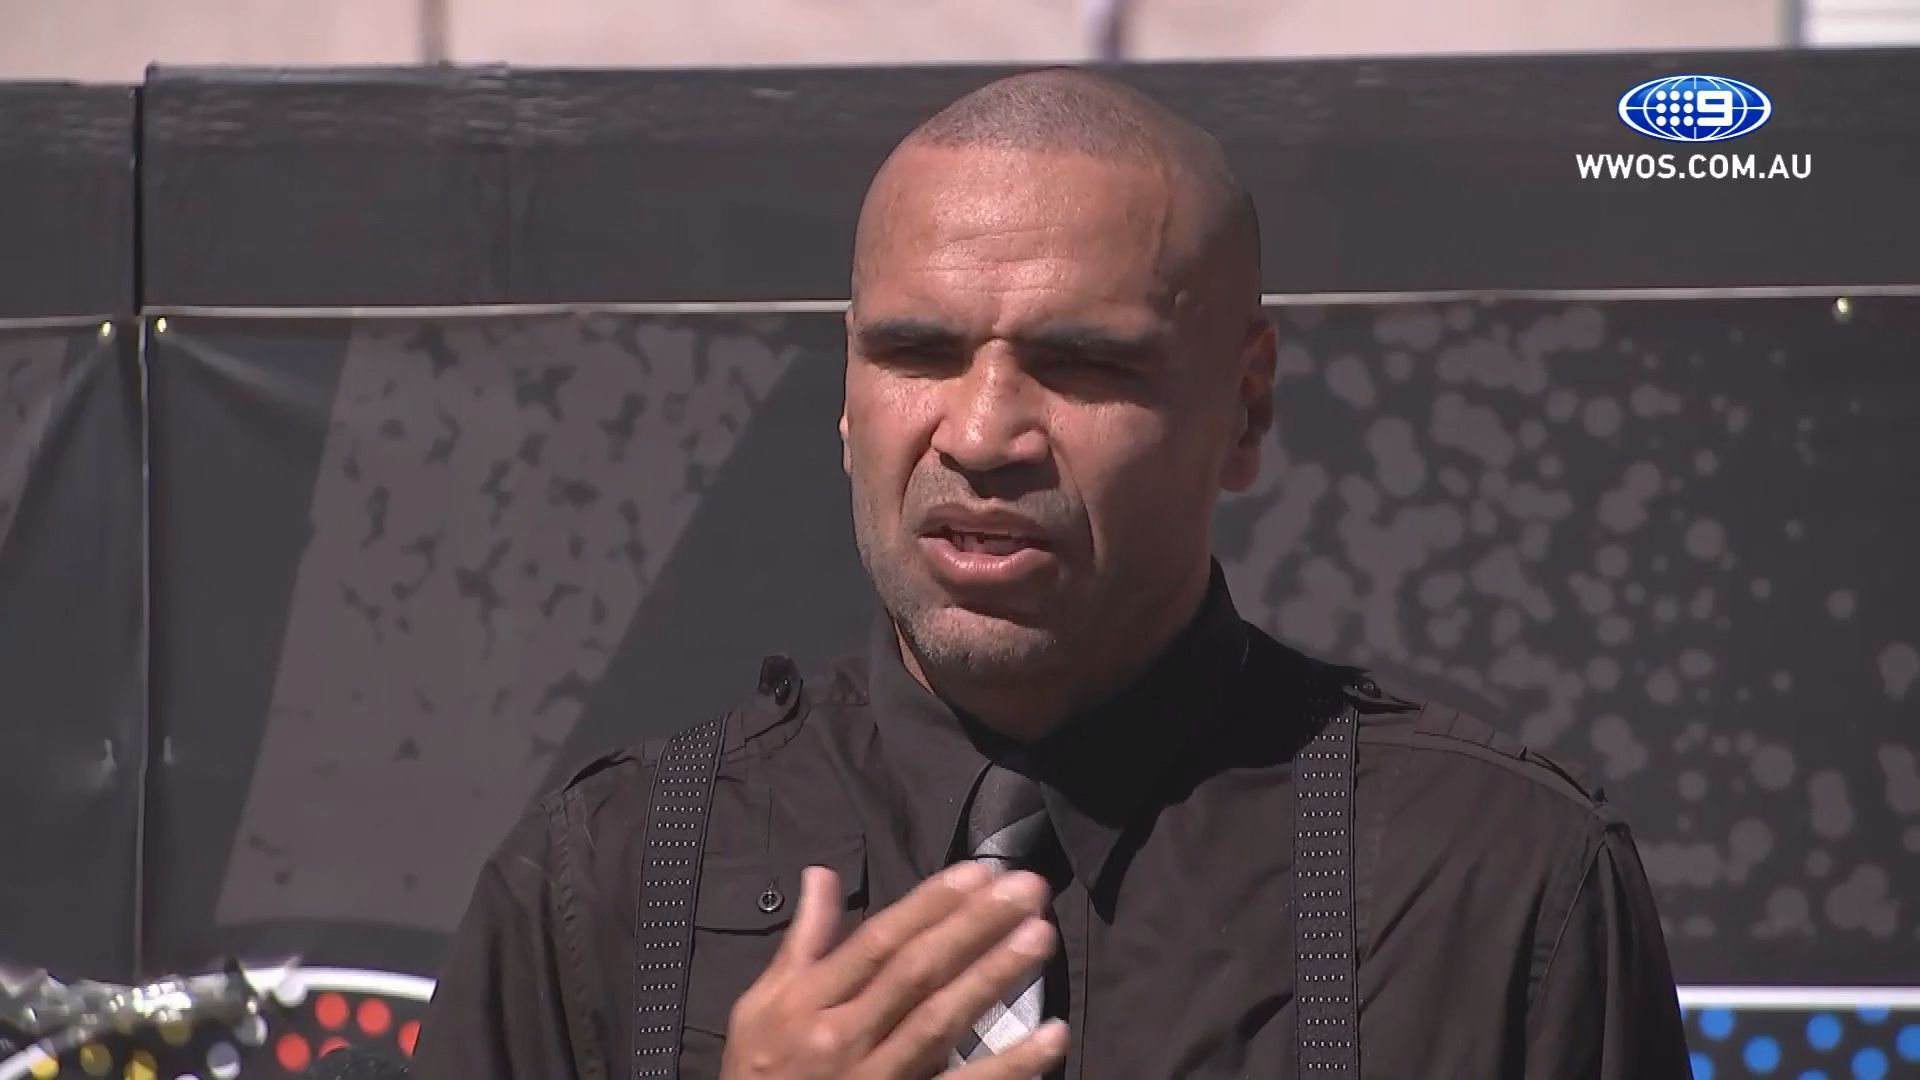 EXCLUSIVE: Laurie Daley pays tribute to Anthony Mundine despite rocky past